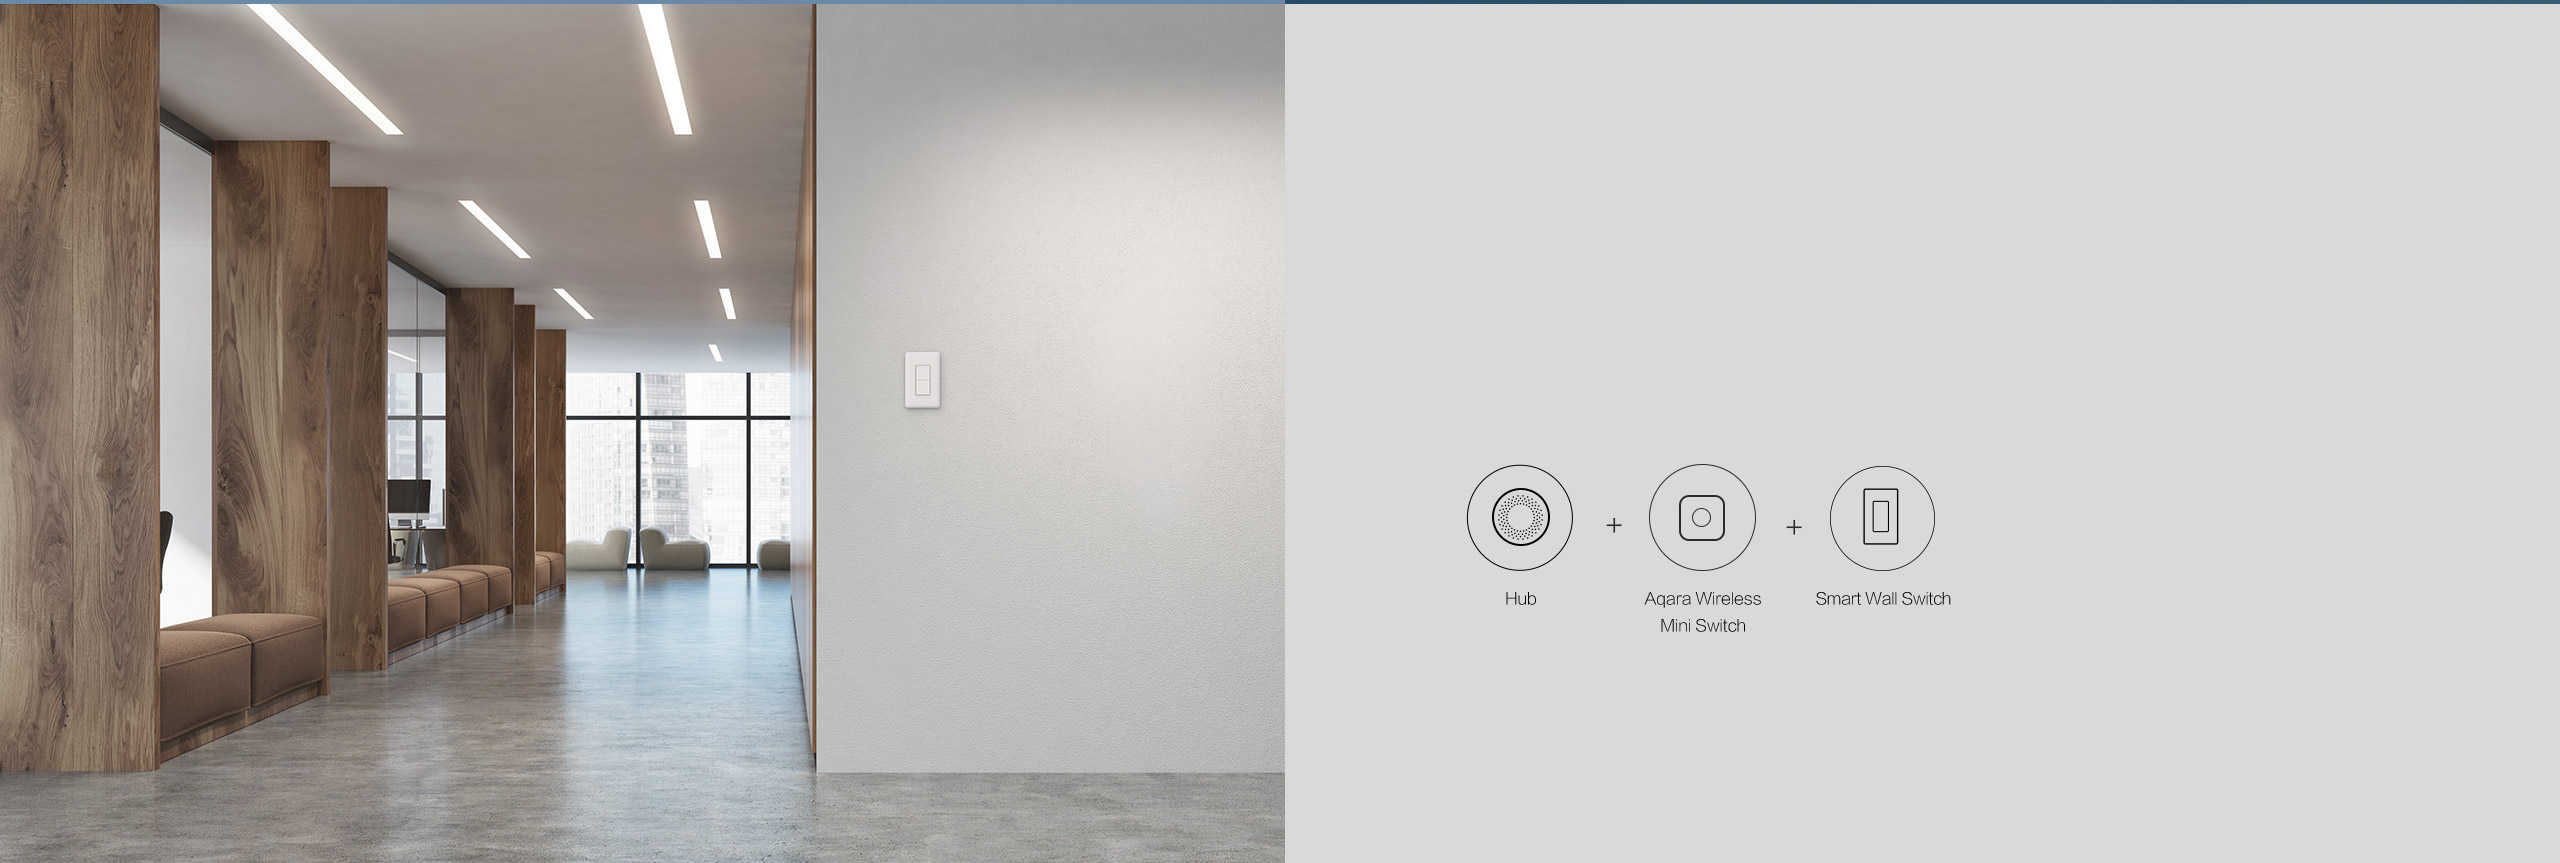 Smart Wall Switch With Neutral - Smart Light Switches | Aqara